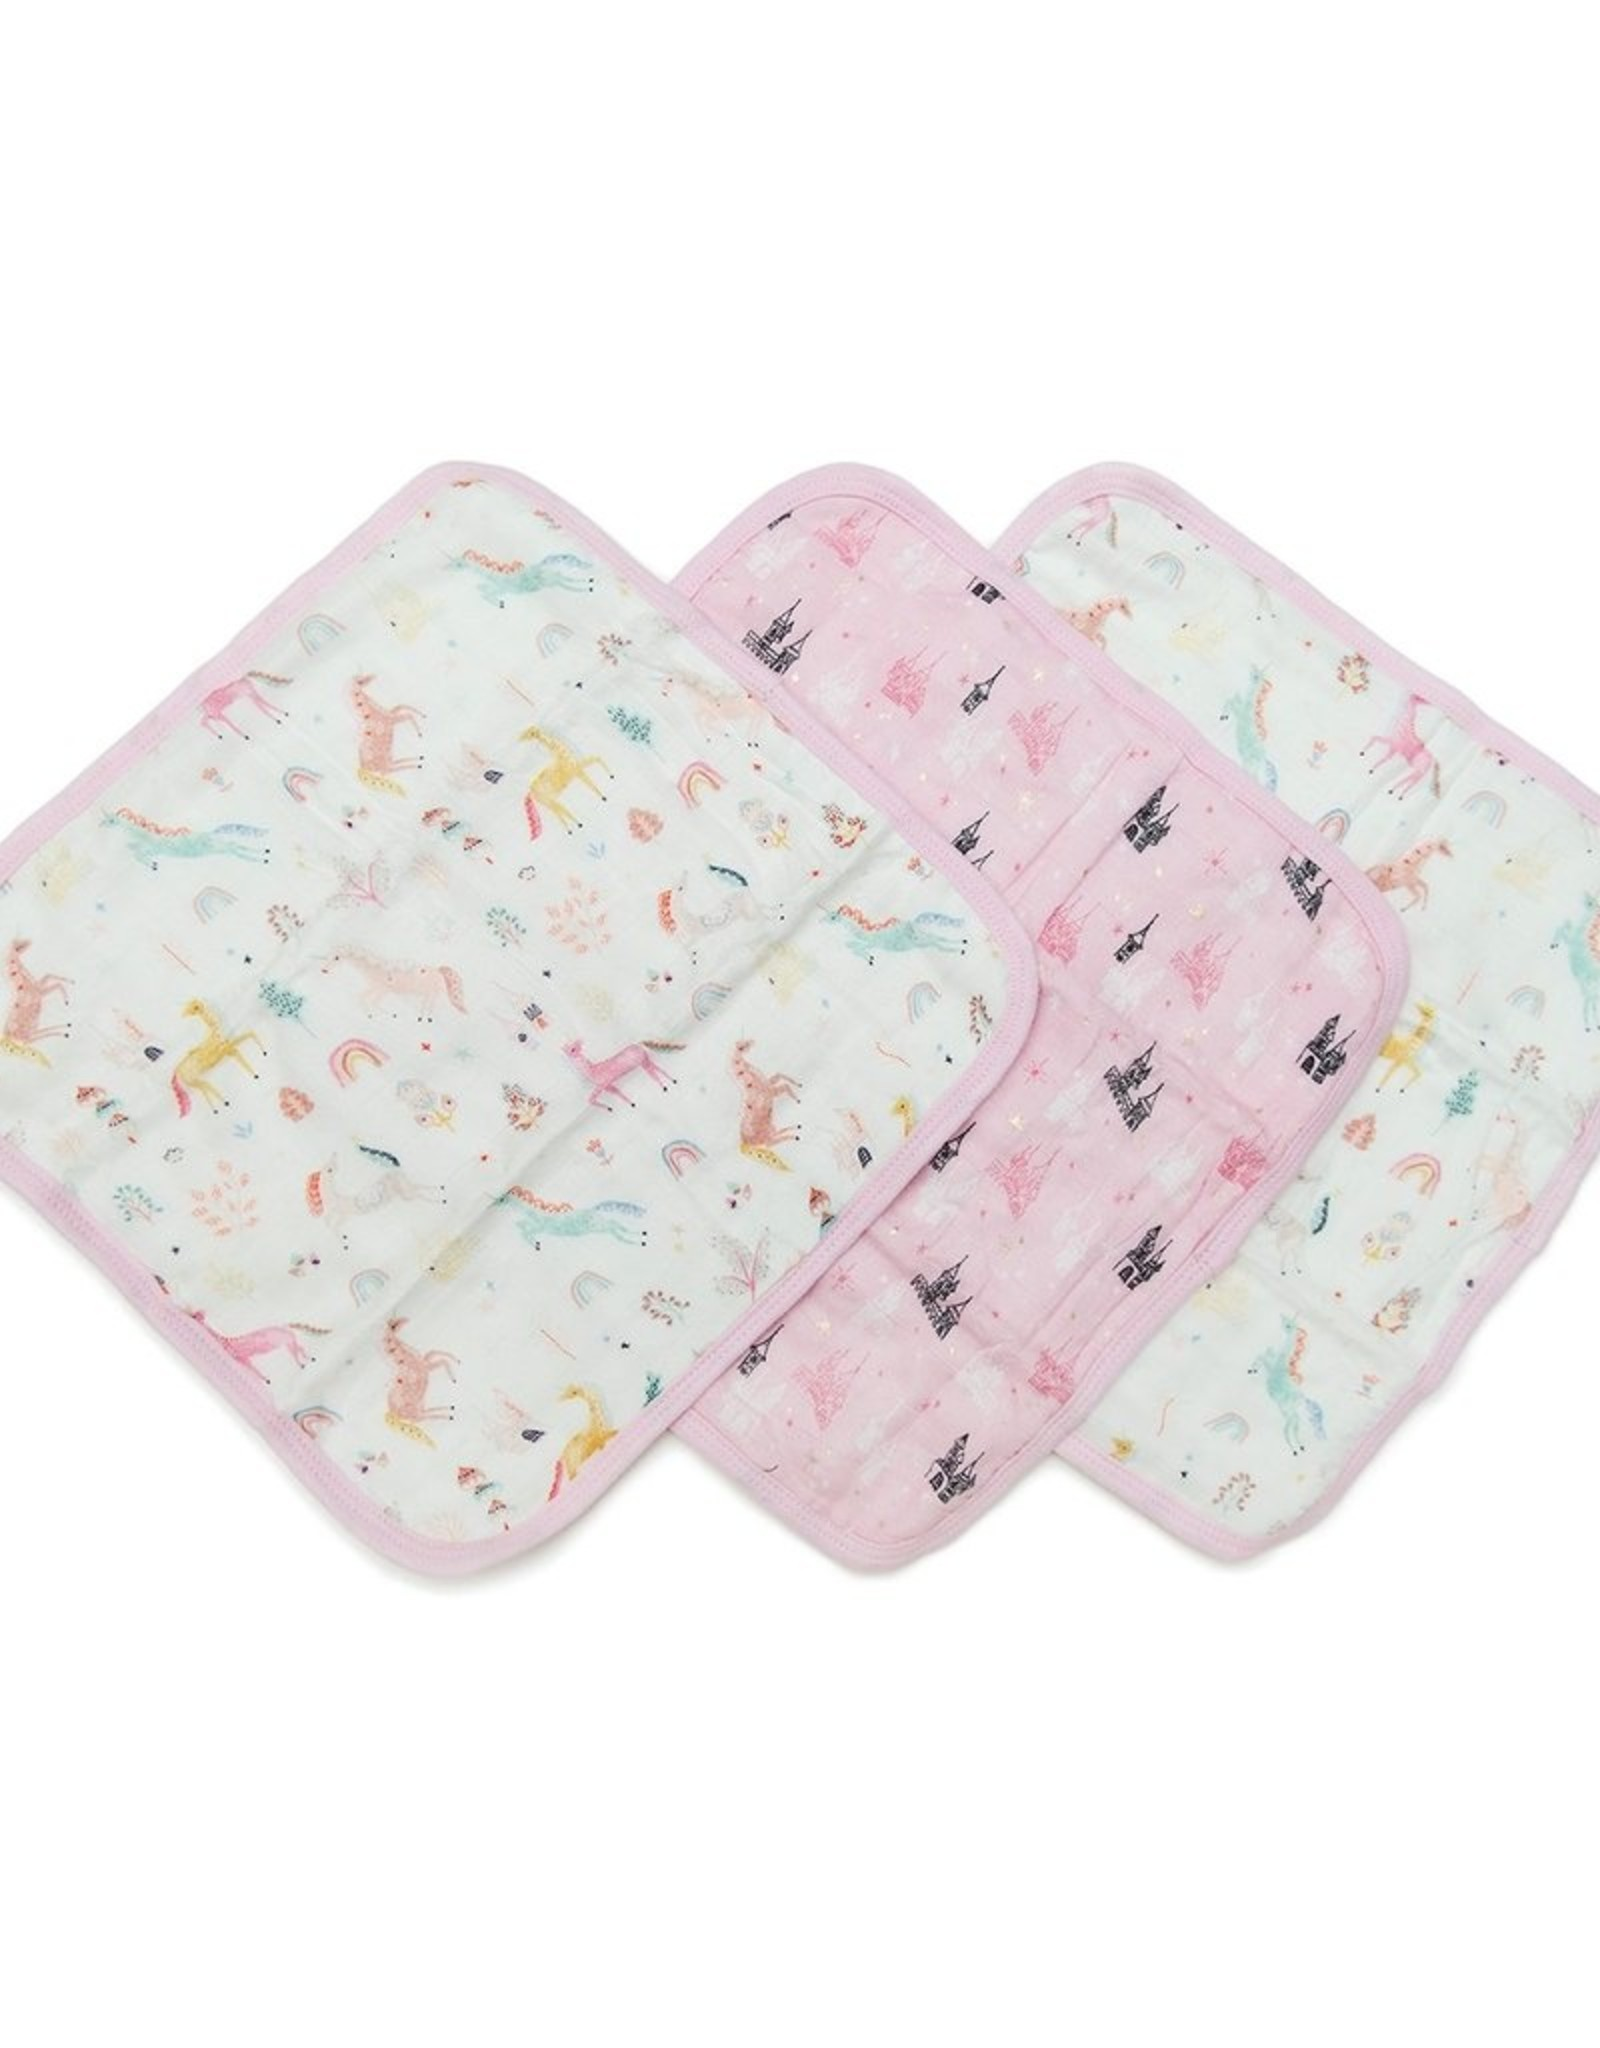 LouLou Lollipop Wash Cloth 3 pack Unicorn Dream